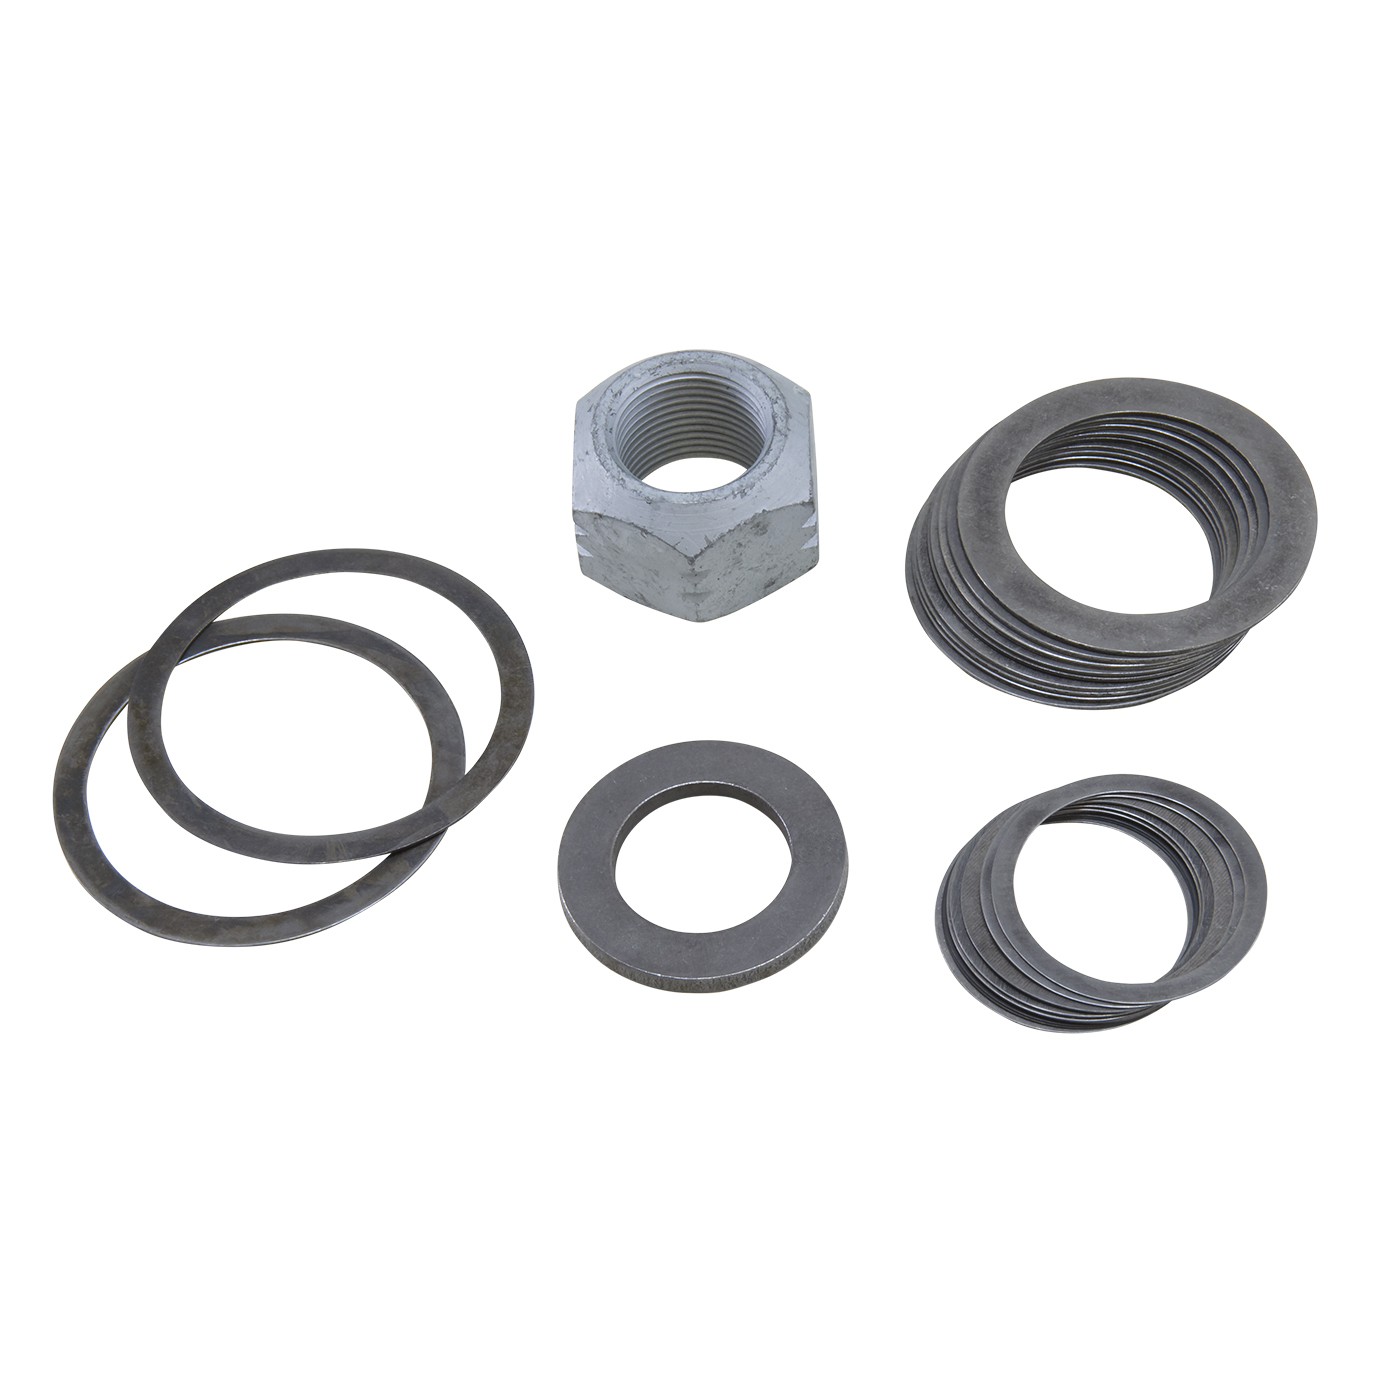 SK 707481 - Replacement complete shim kit for Dana 80